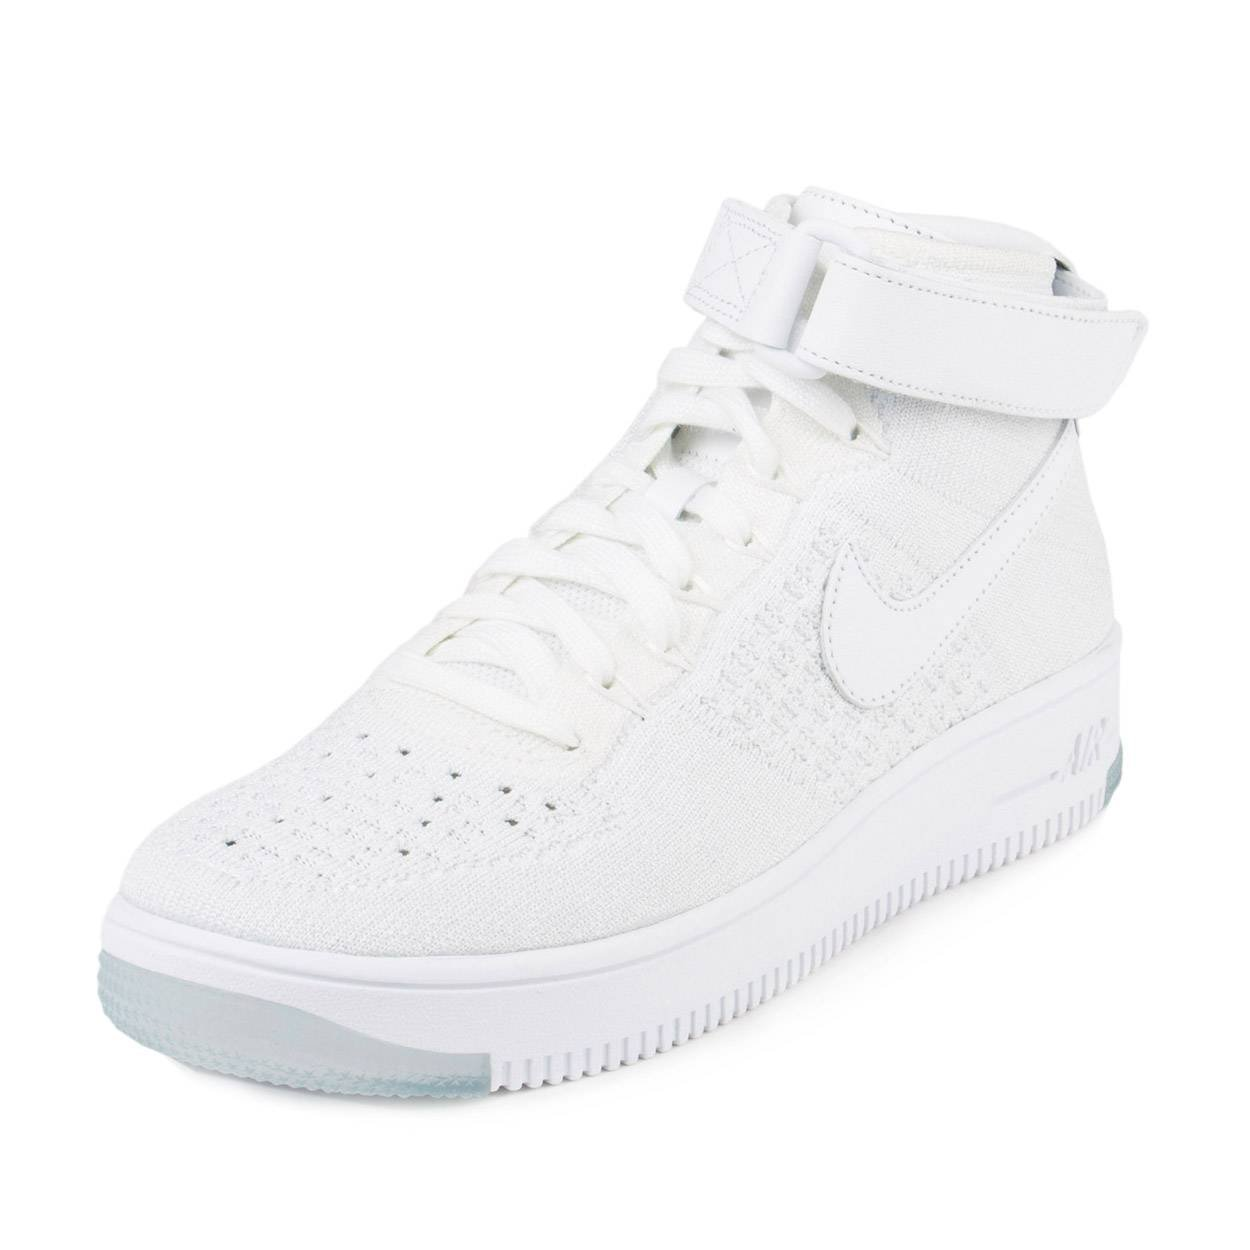 detailed look af540 d6269 Nike Womens AF1 Ultra Flyknit White/White/Pure Platinum Basketball Shoe 8  Women US